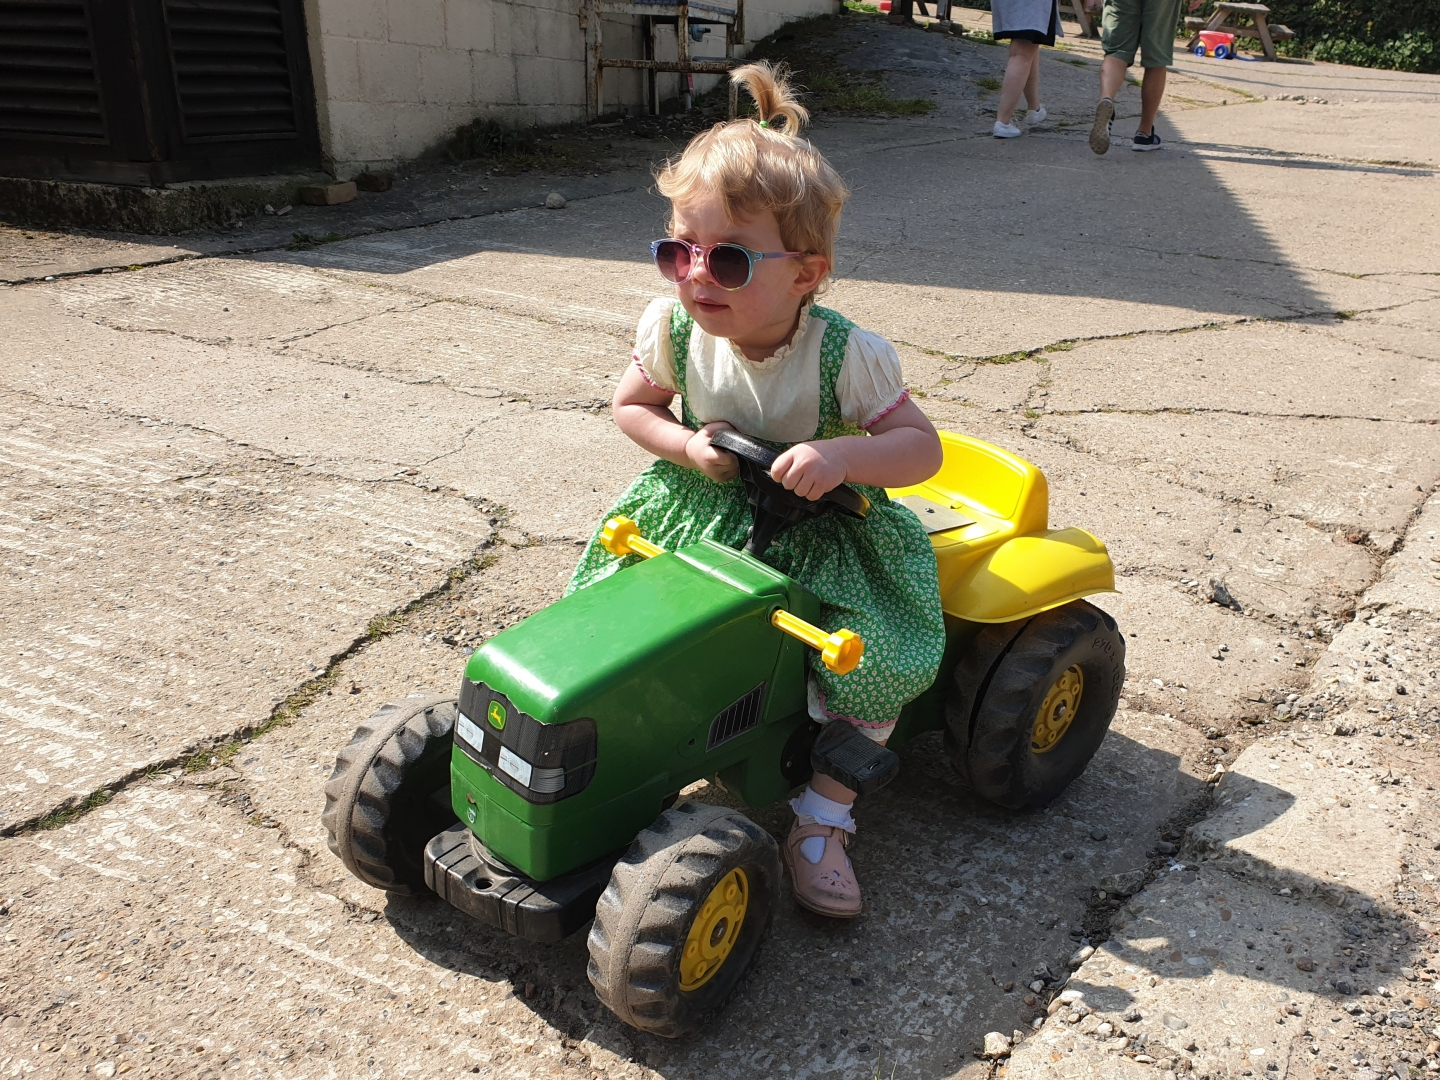 Toddler on toy tractor